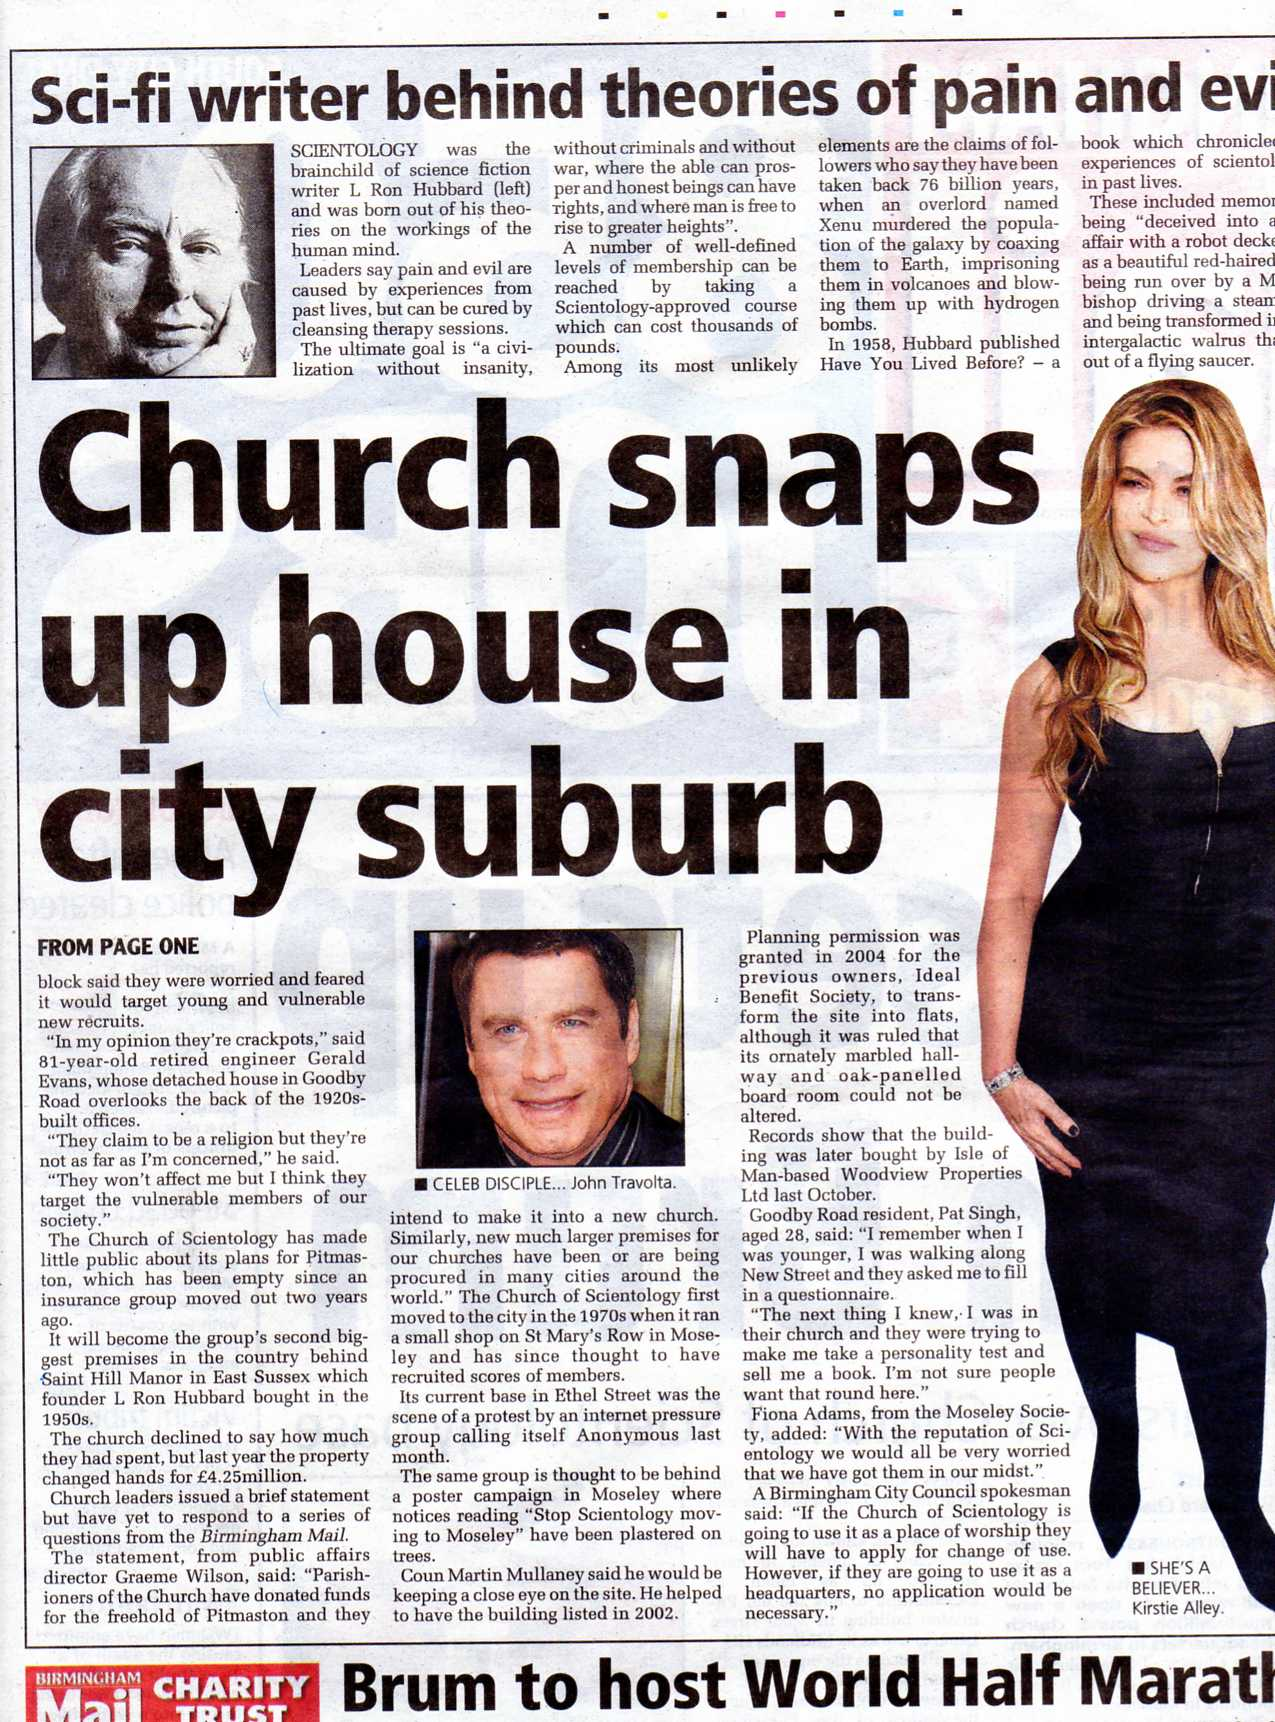 The CURSE of Scientology!